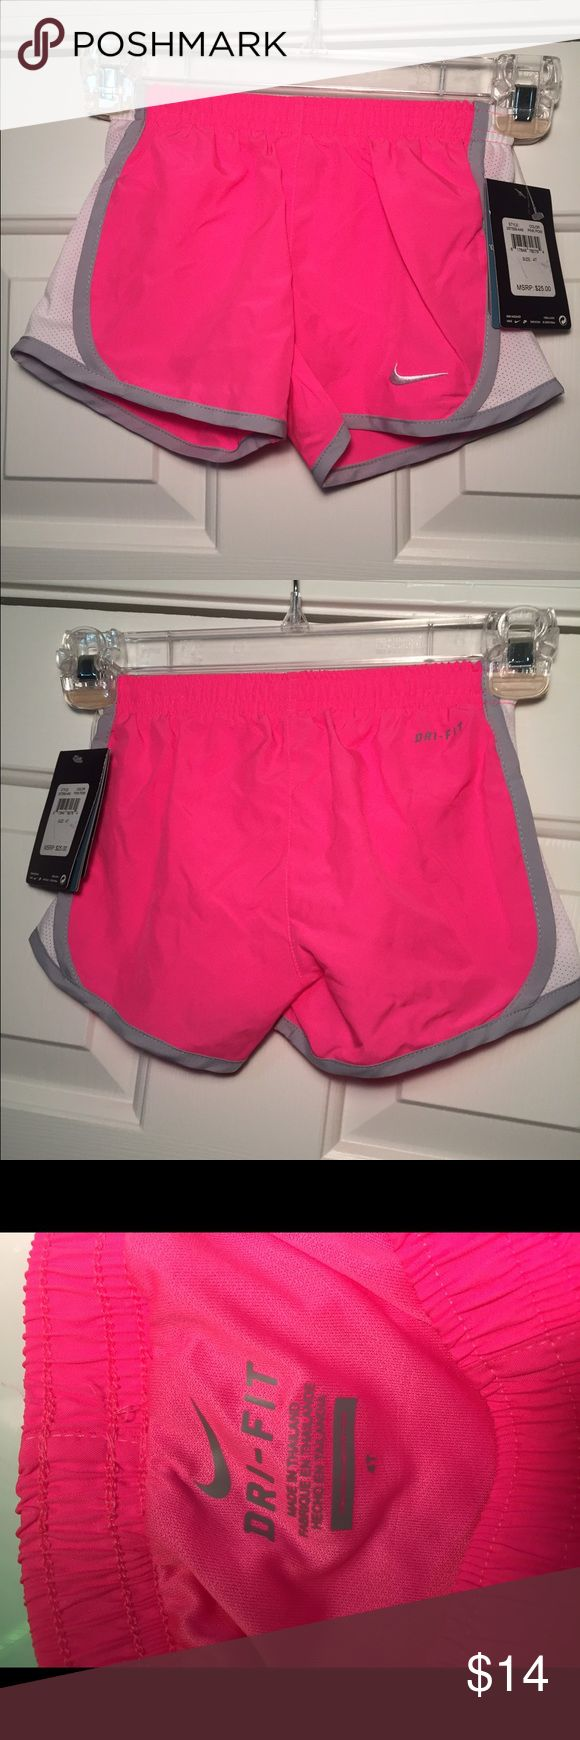 Nike Dri Fit 4T Girls Hot Pink shorts with briefs Cute Hot Pink shorts for a little girl; Brand new with tags; Built in briefs; Dri-Fit Nike technology to keep you dry and cool; Retails: $28 Nike Bottoms Shorts